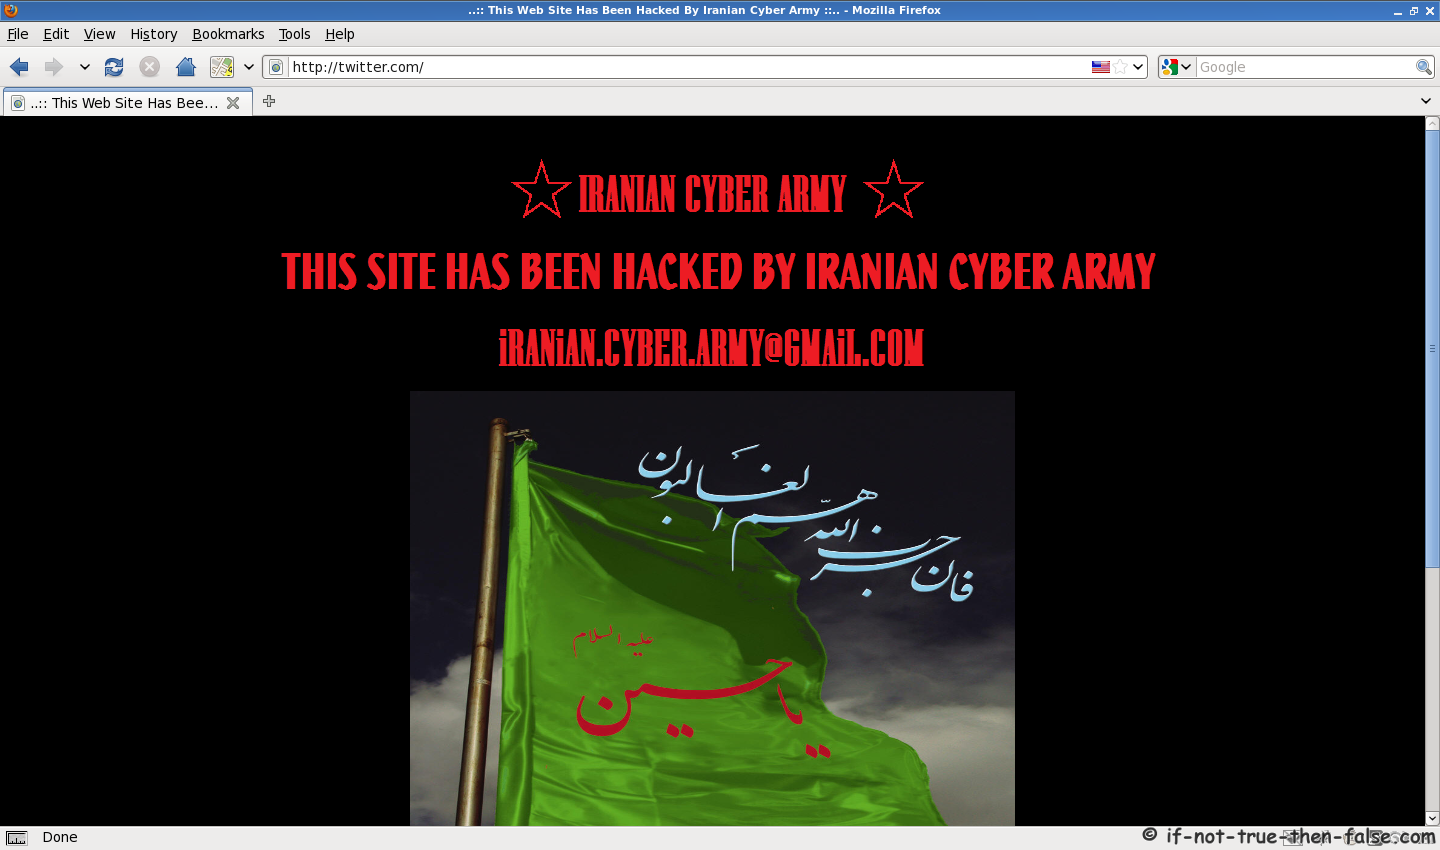 This_Web_Site_Has_Been_Hacked_By_Iranian_Cyber_Army